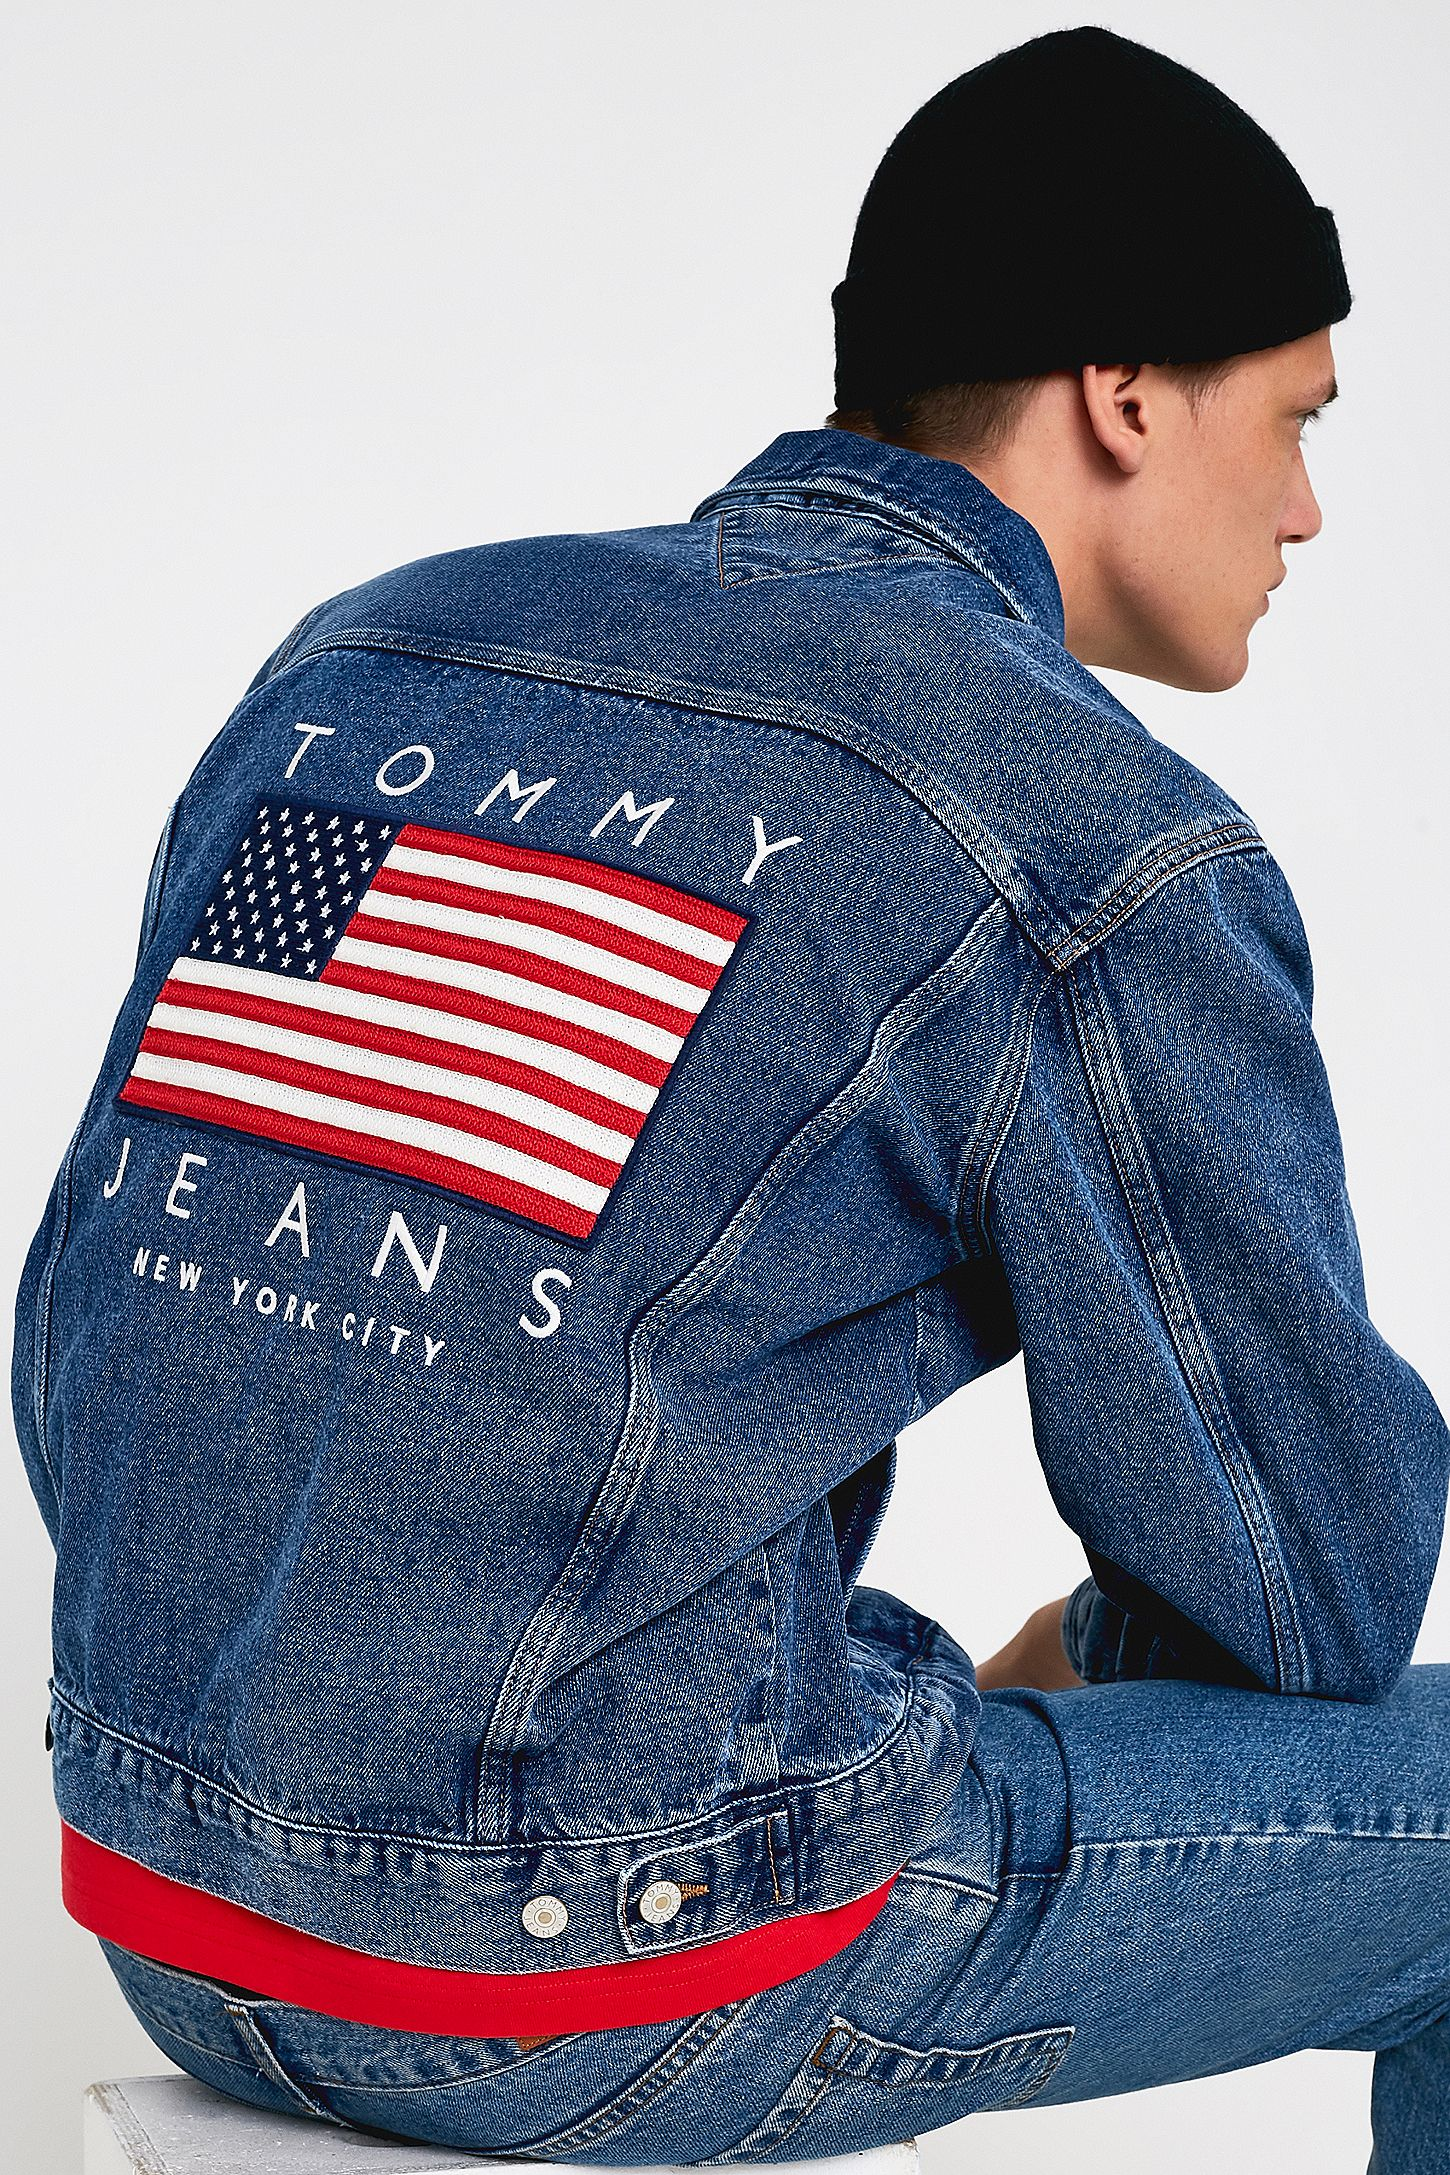 90f551b3e Tommy Jeans USA Flag Denim Jacket | Urban Outfitters UK